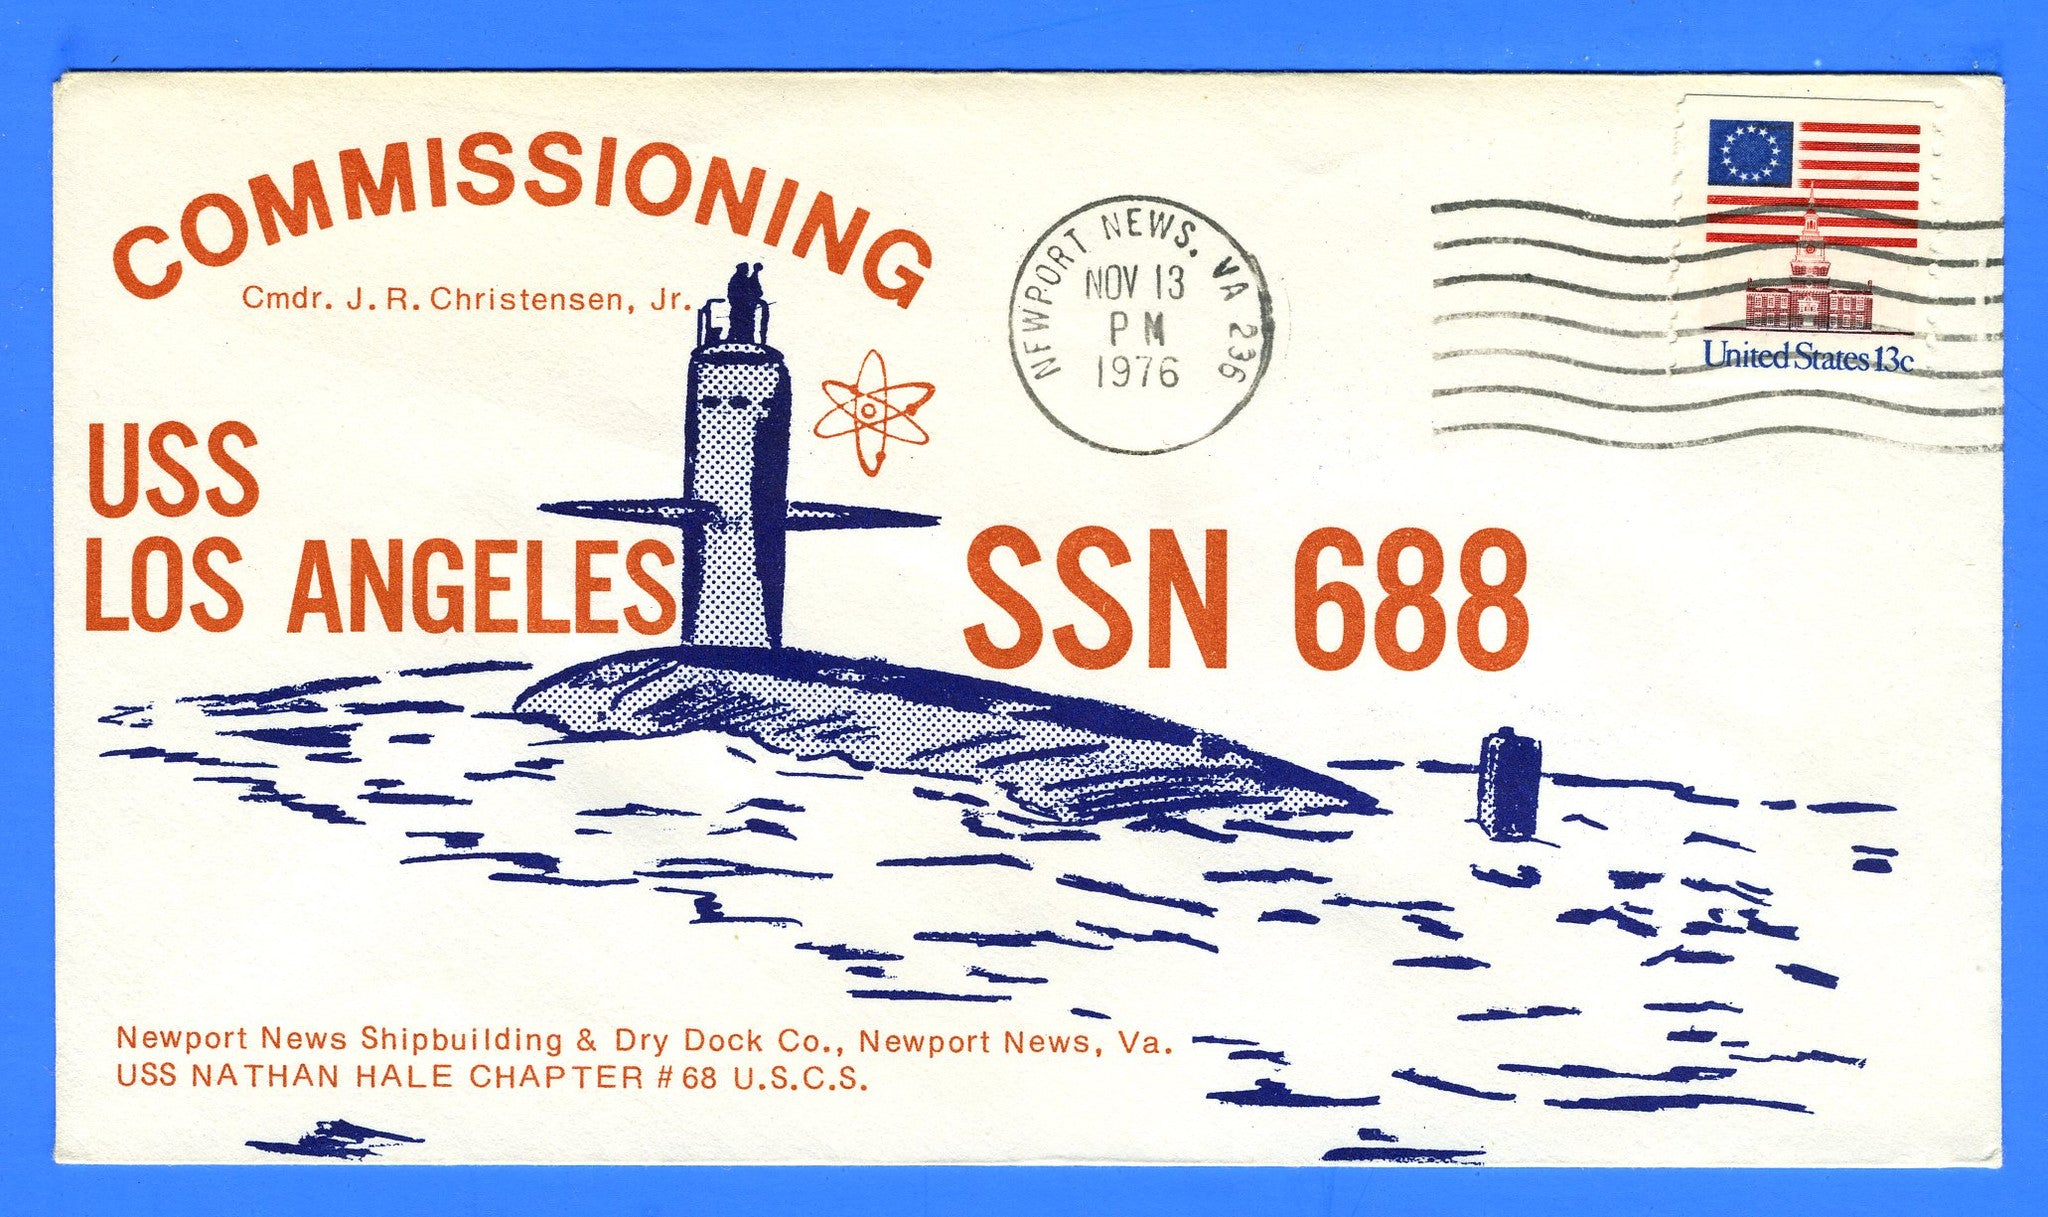 USS Los Angeles SSN-688 Commissioned November 13, 1976